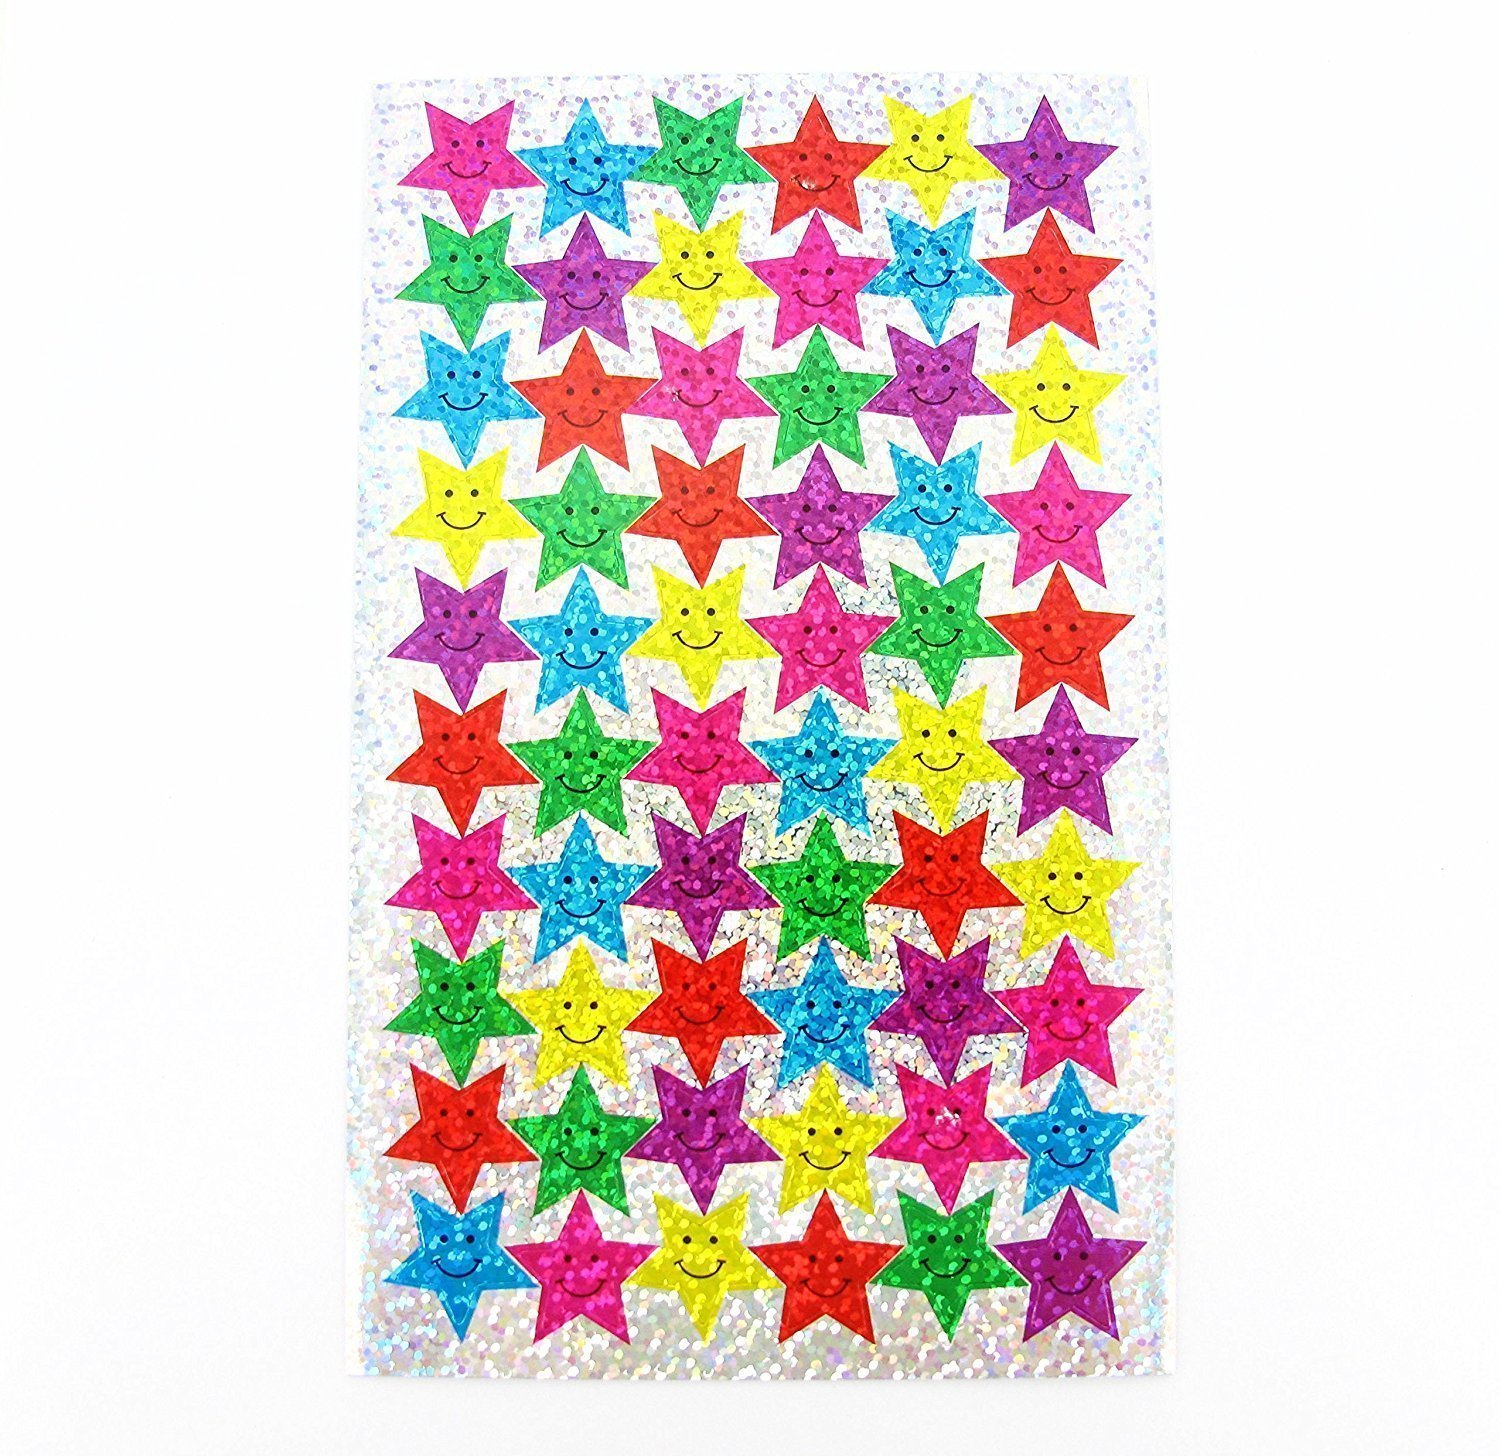 100 Sparkle Smiles Stickers & 100 Sparkle Stars Stickers - Great for Reward Charts & Marking School Work CHOCKERS SHOES